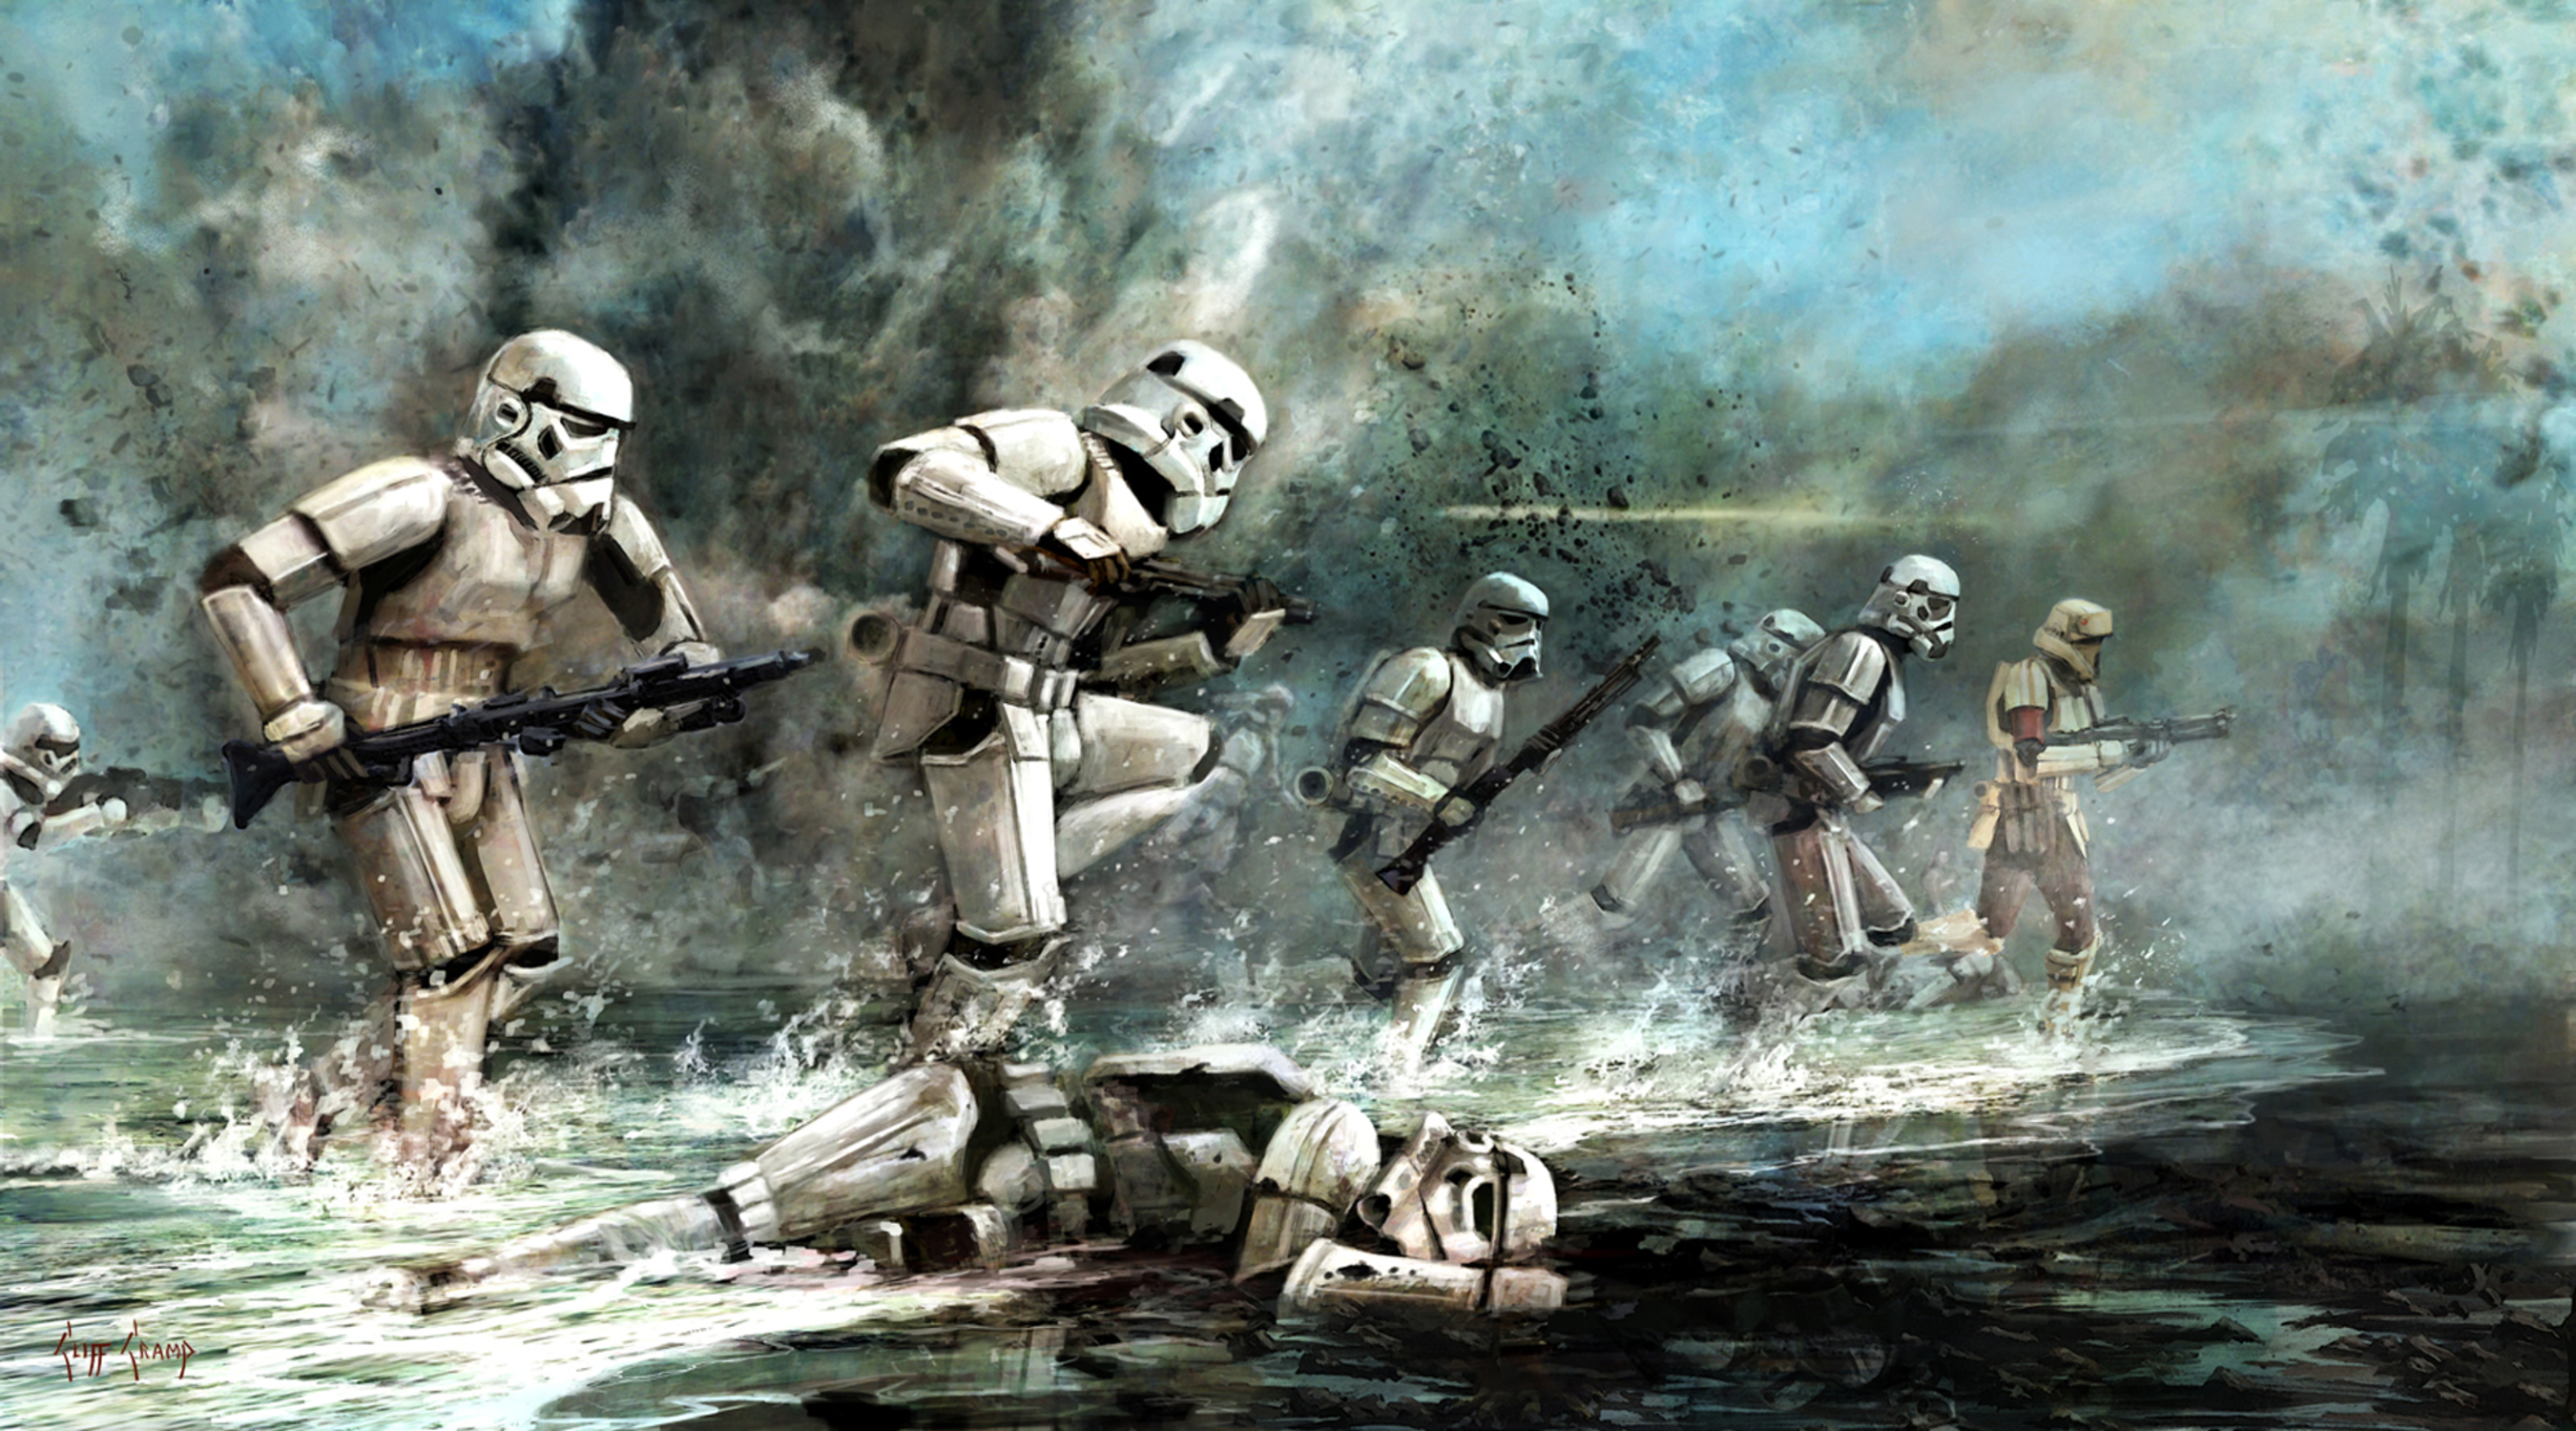 Storming Troopers Artwork by Cliff Cramp